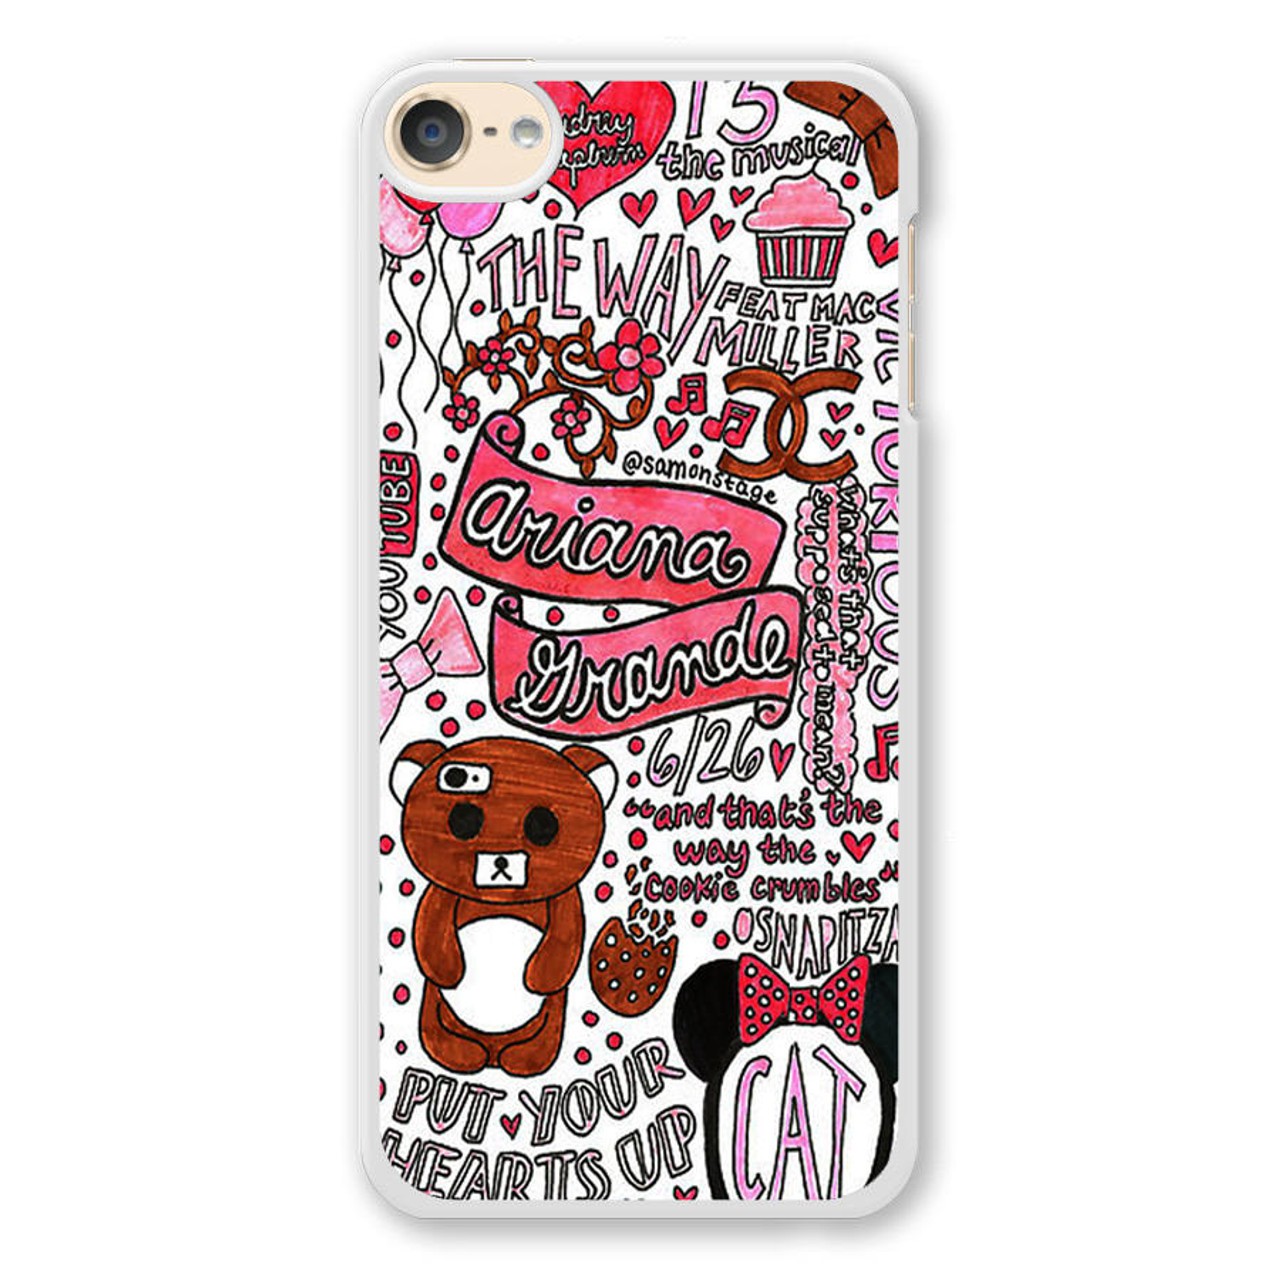 Ariana Grande Quotes iPod Touch 6 Case